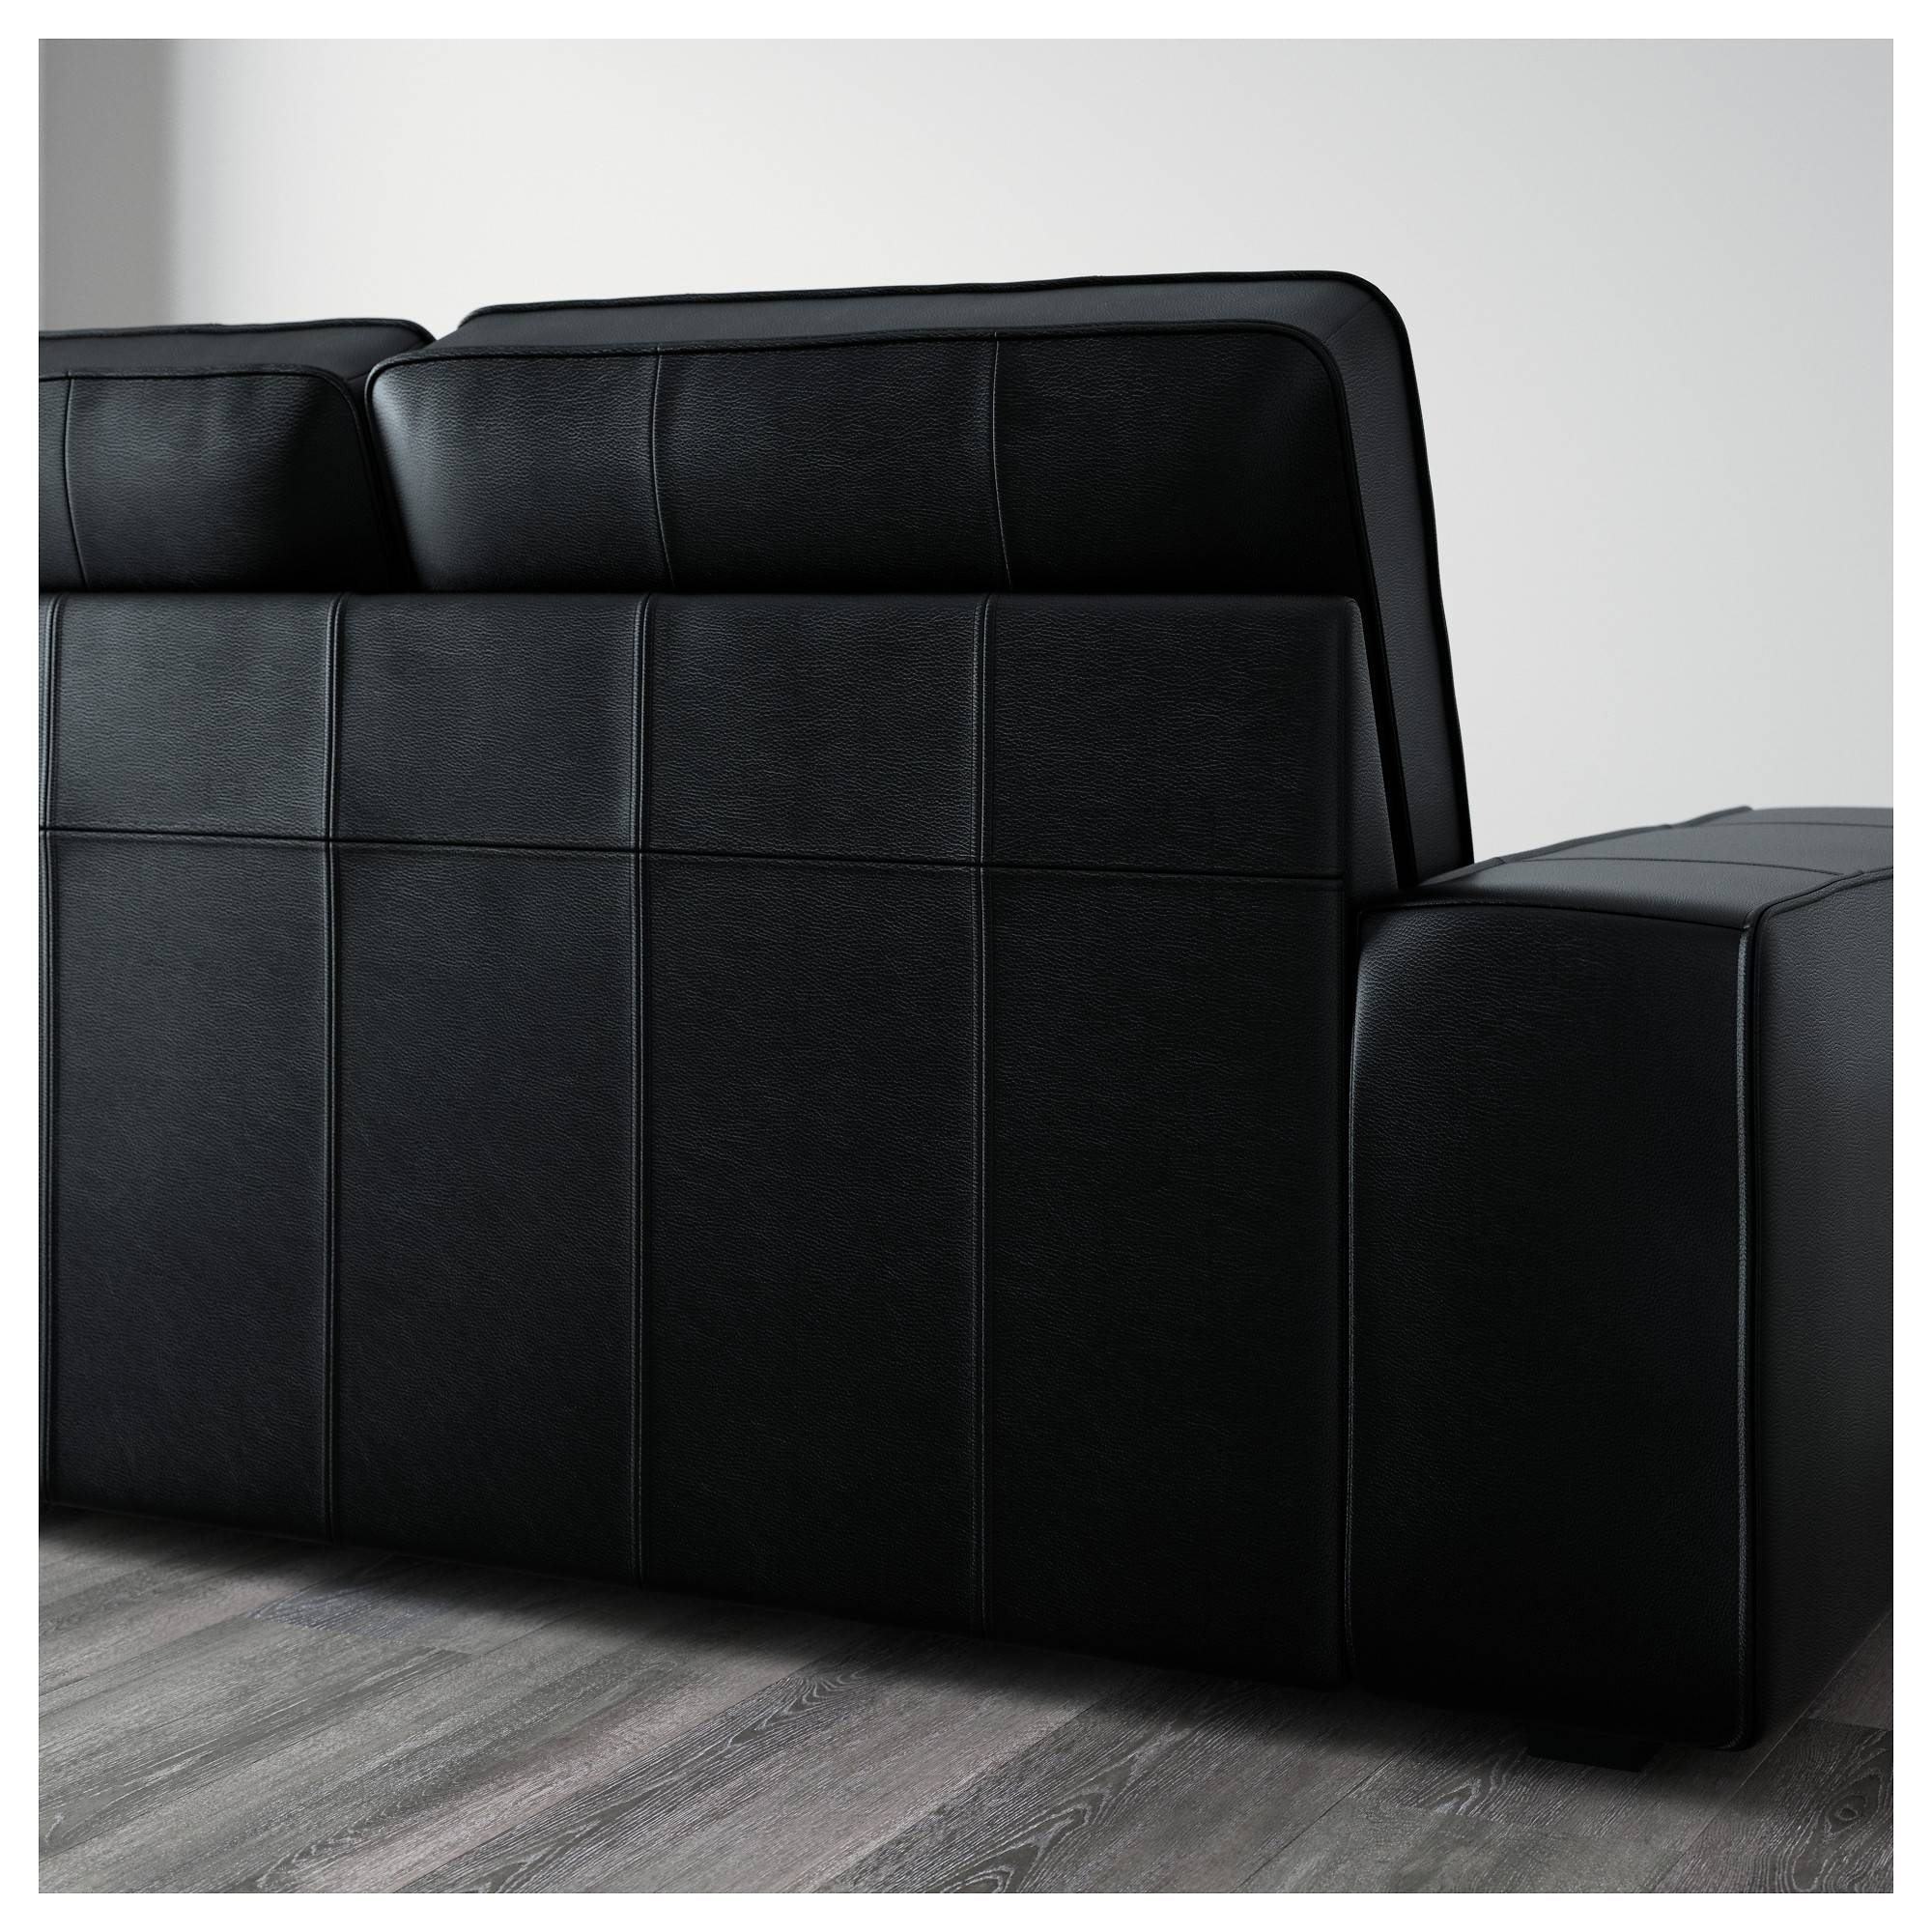 Kivik Sofa, U-Shaped 8-Seater/grann/bomstad Black - Ikea regarding Ikea Two Seater Sofas (Image 12 of 30)